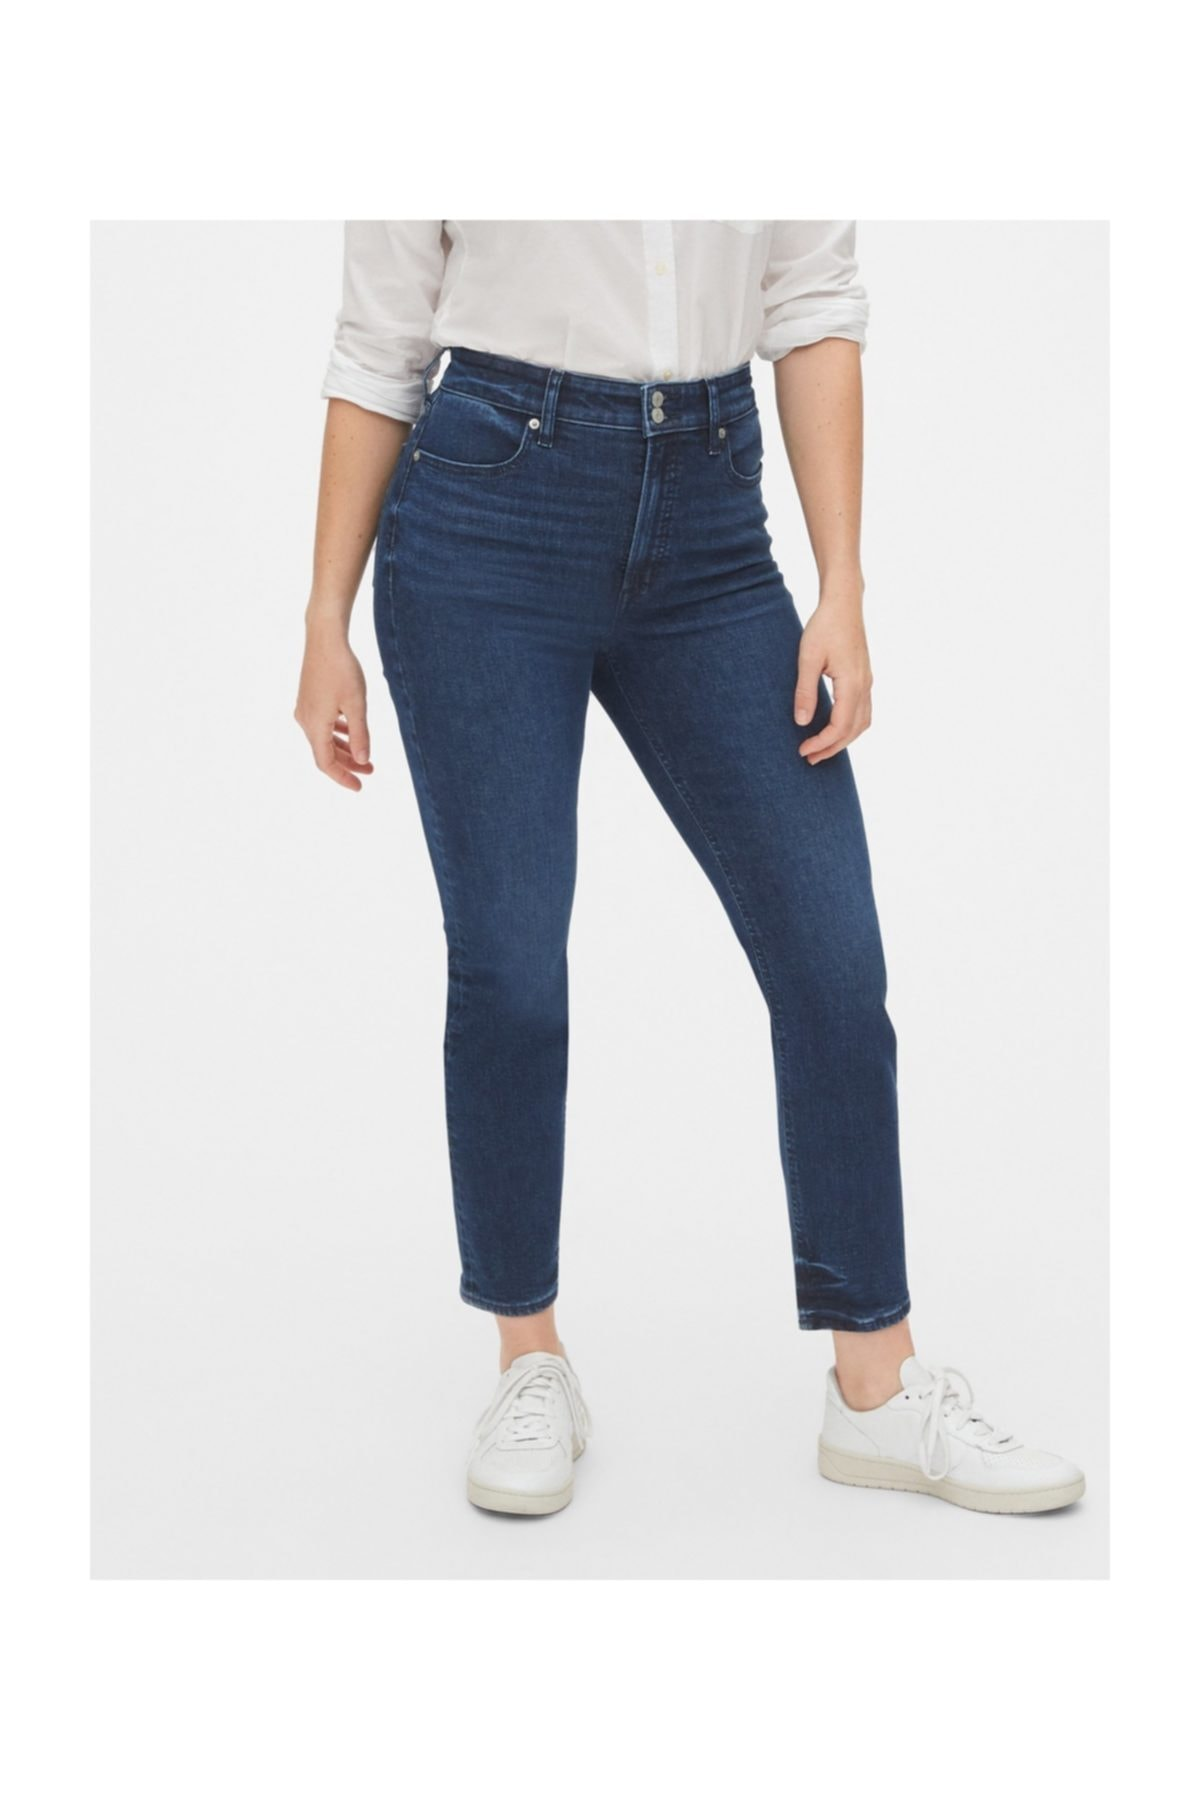 GAP High Rise Cigarette Jean Pantolon 1